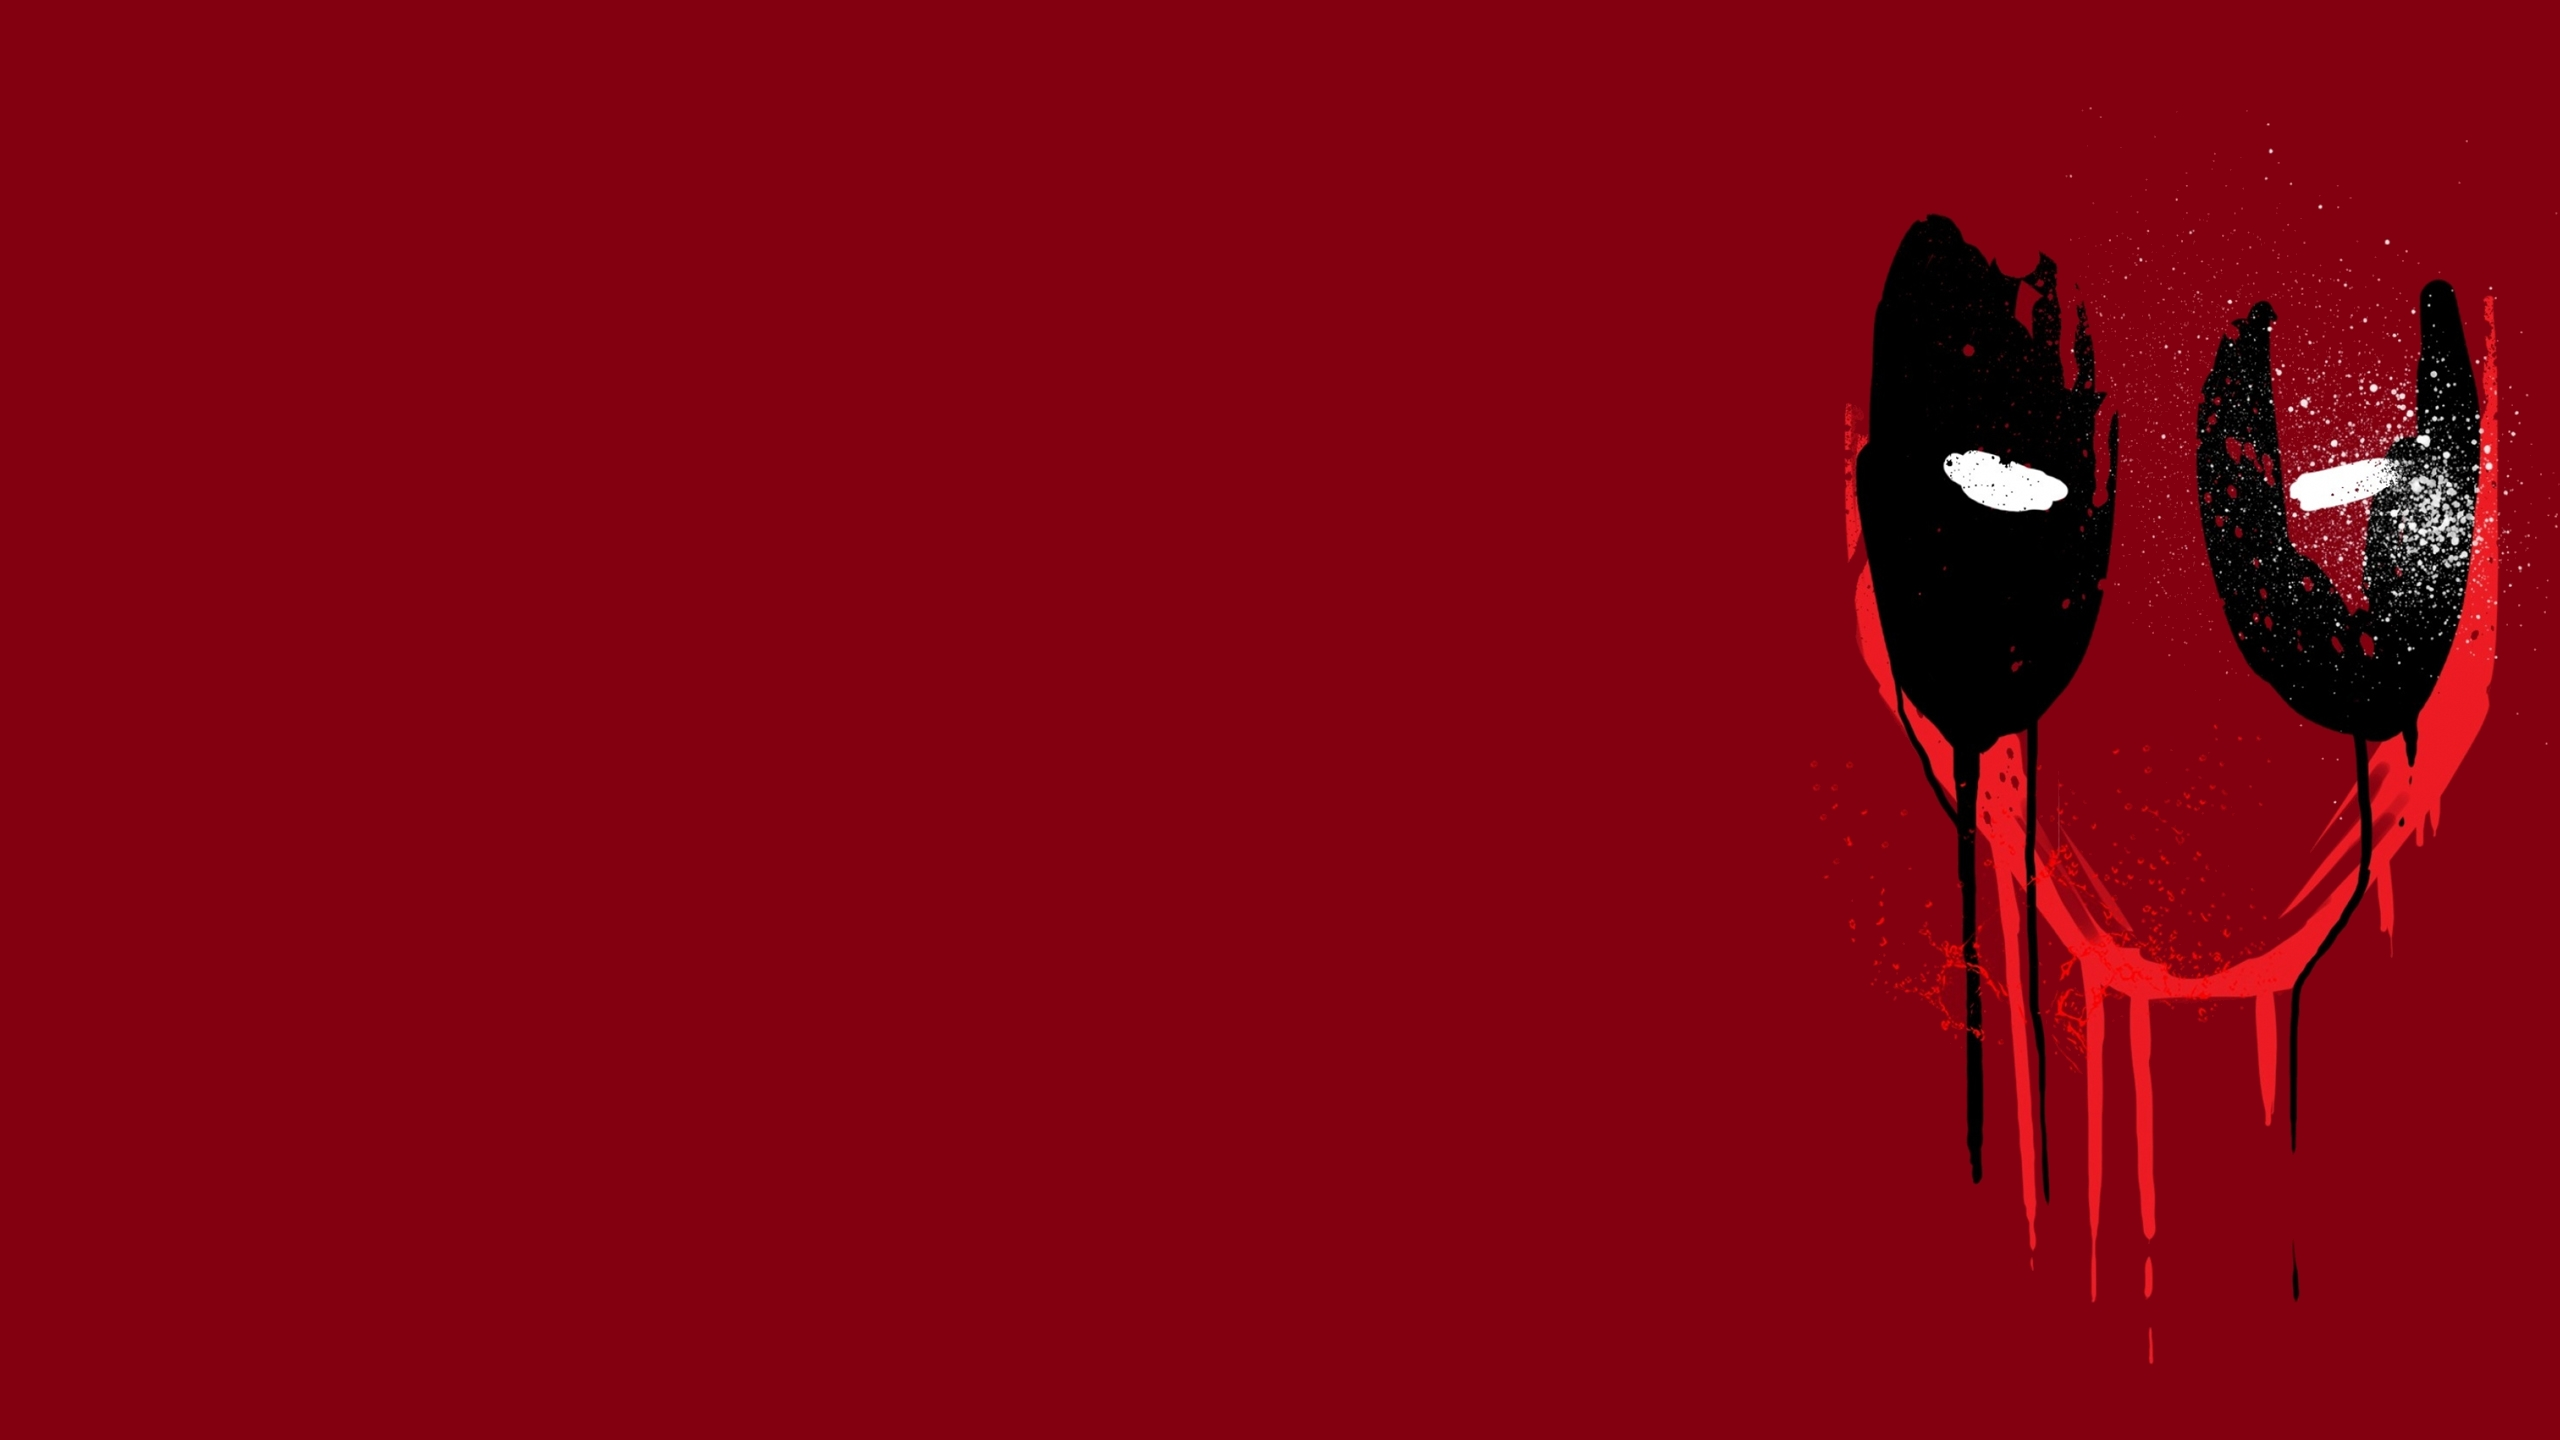 Book Cover Background Xbox One : Deadpool full hd wallpaper and background image